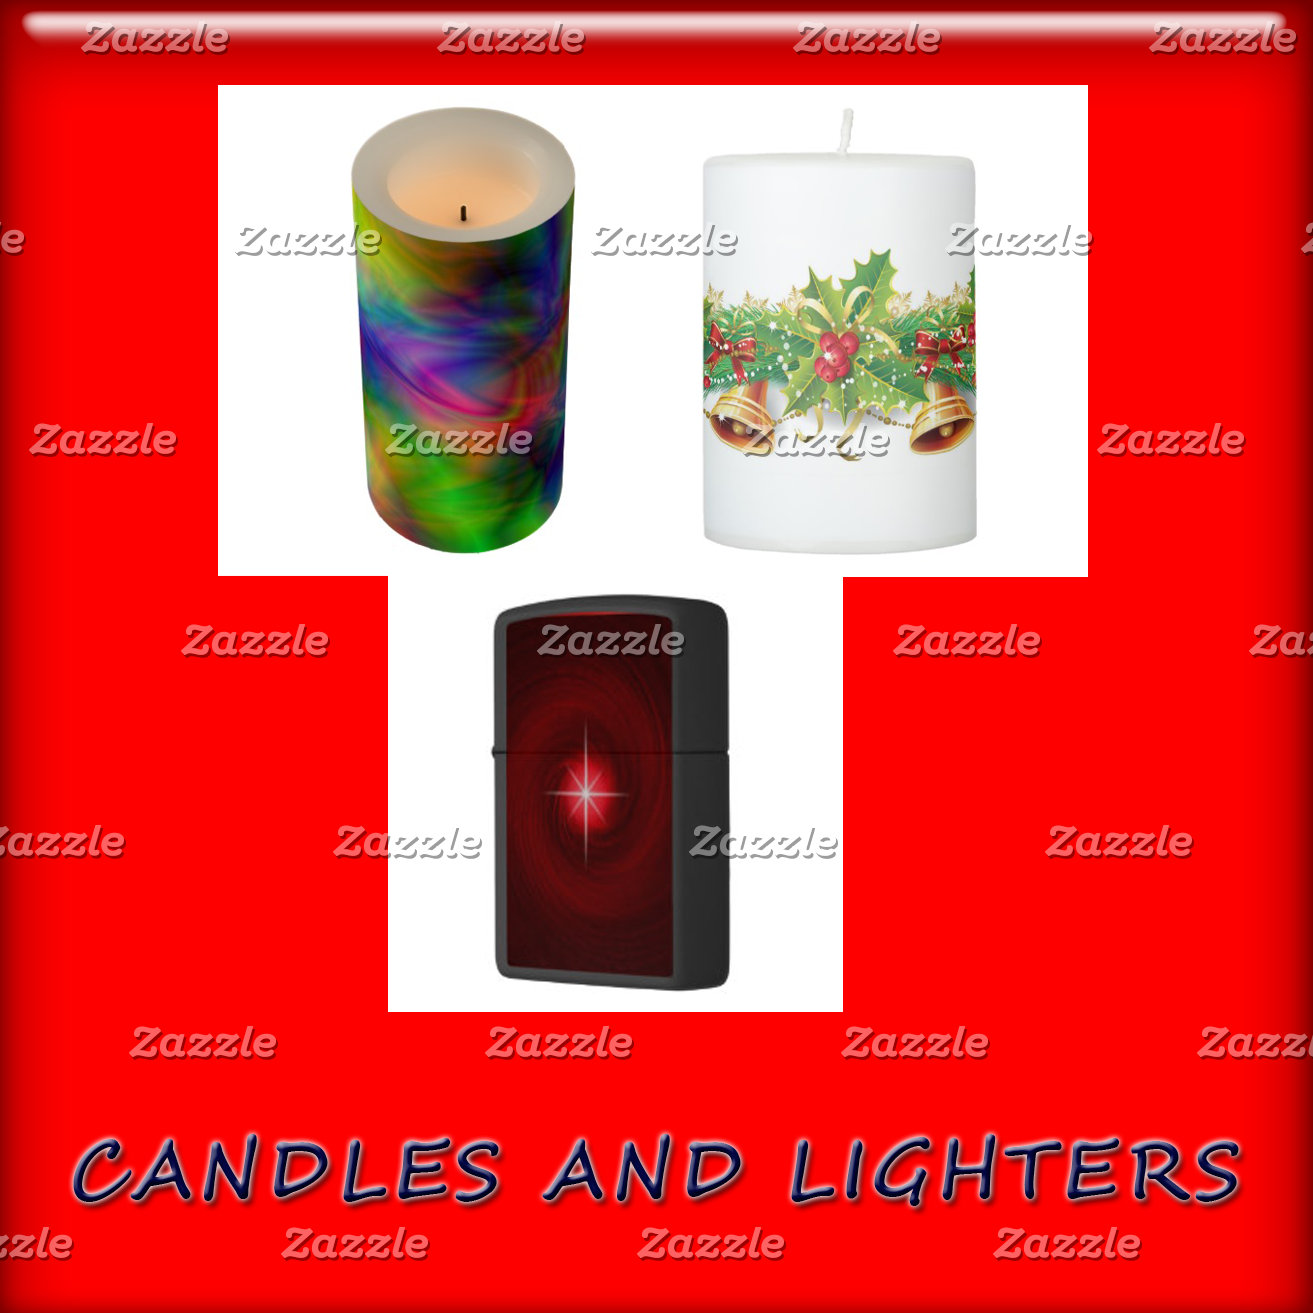 Candles & Lighters